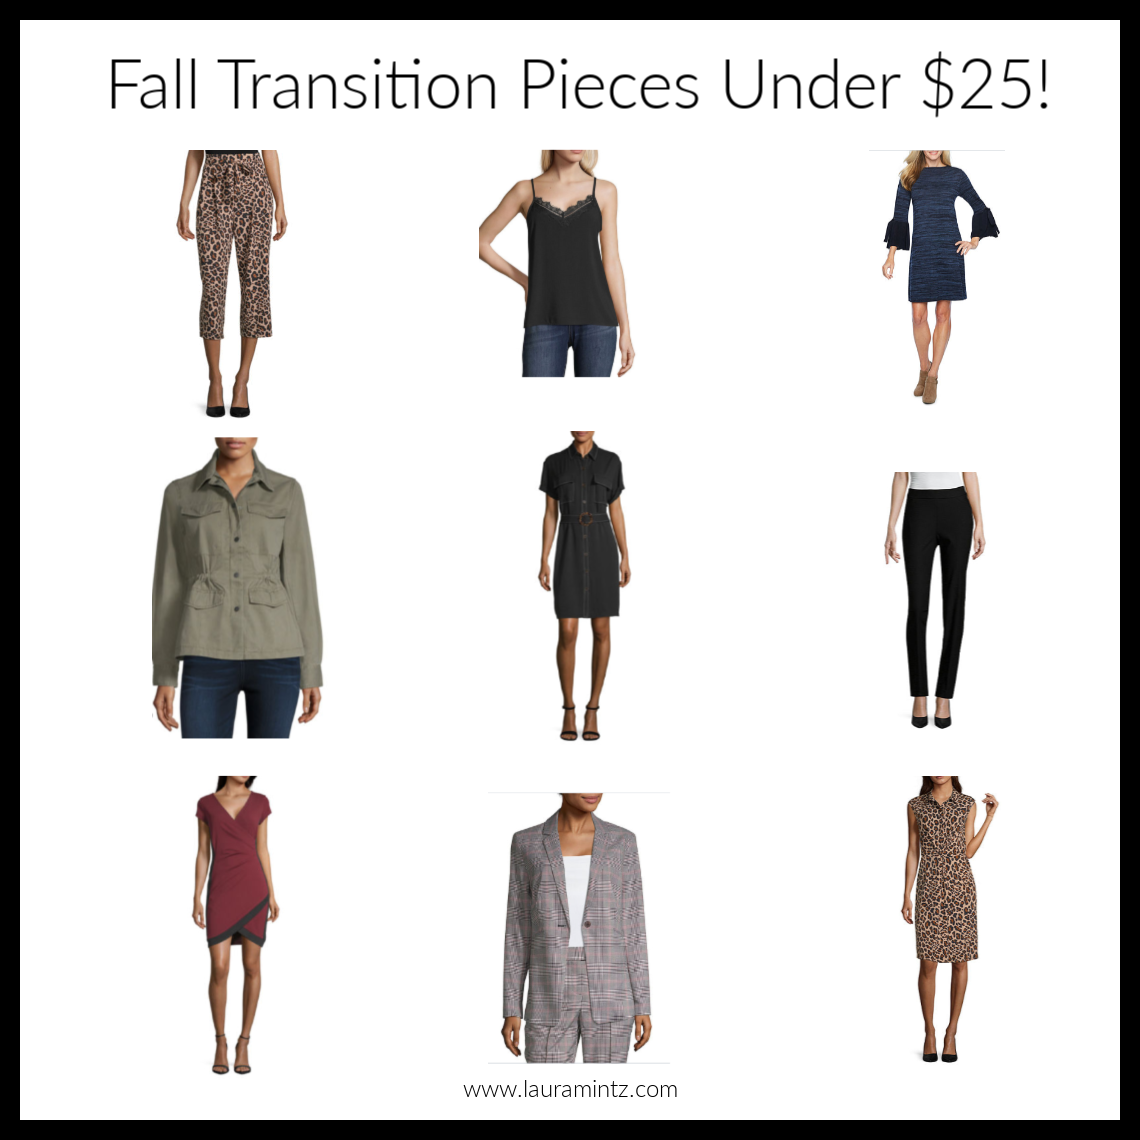 Fall Transitional Pieces Under $25